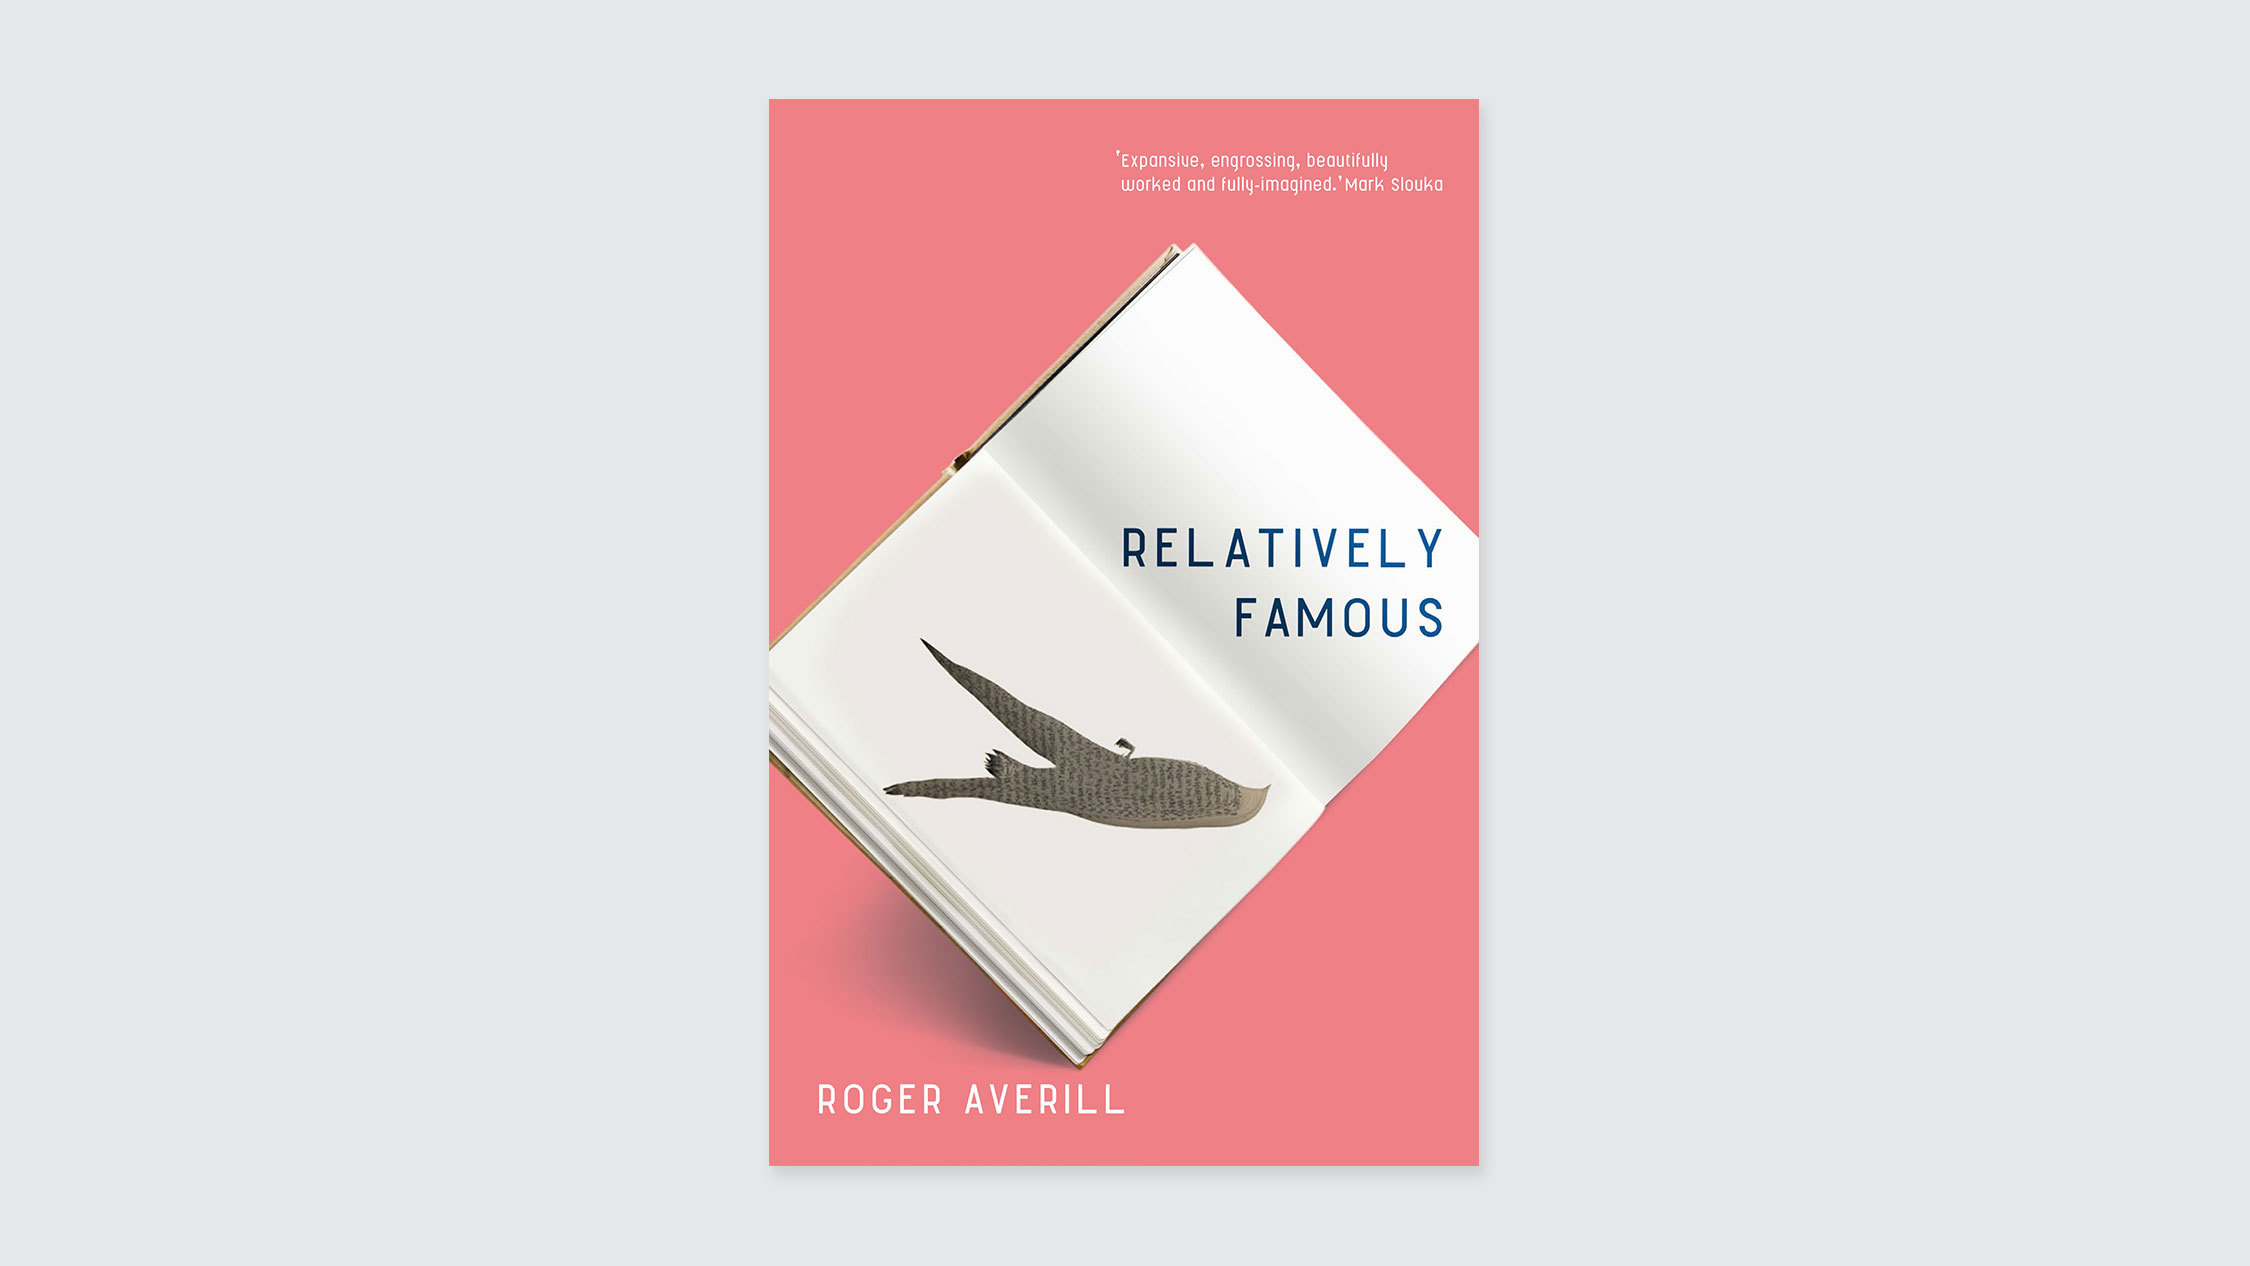 Relatively Famous by Roger Averill